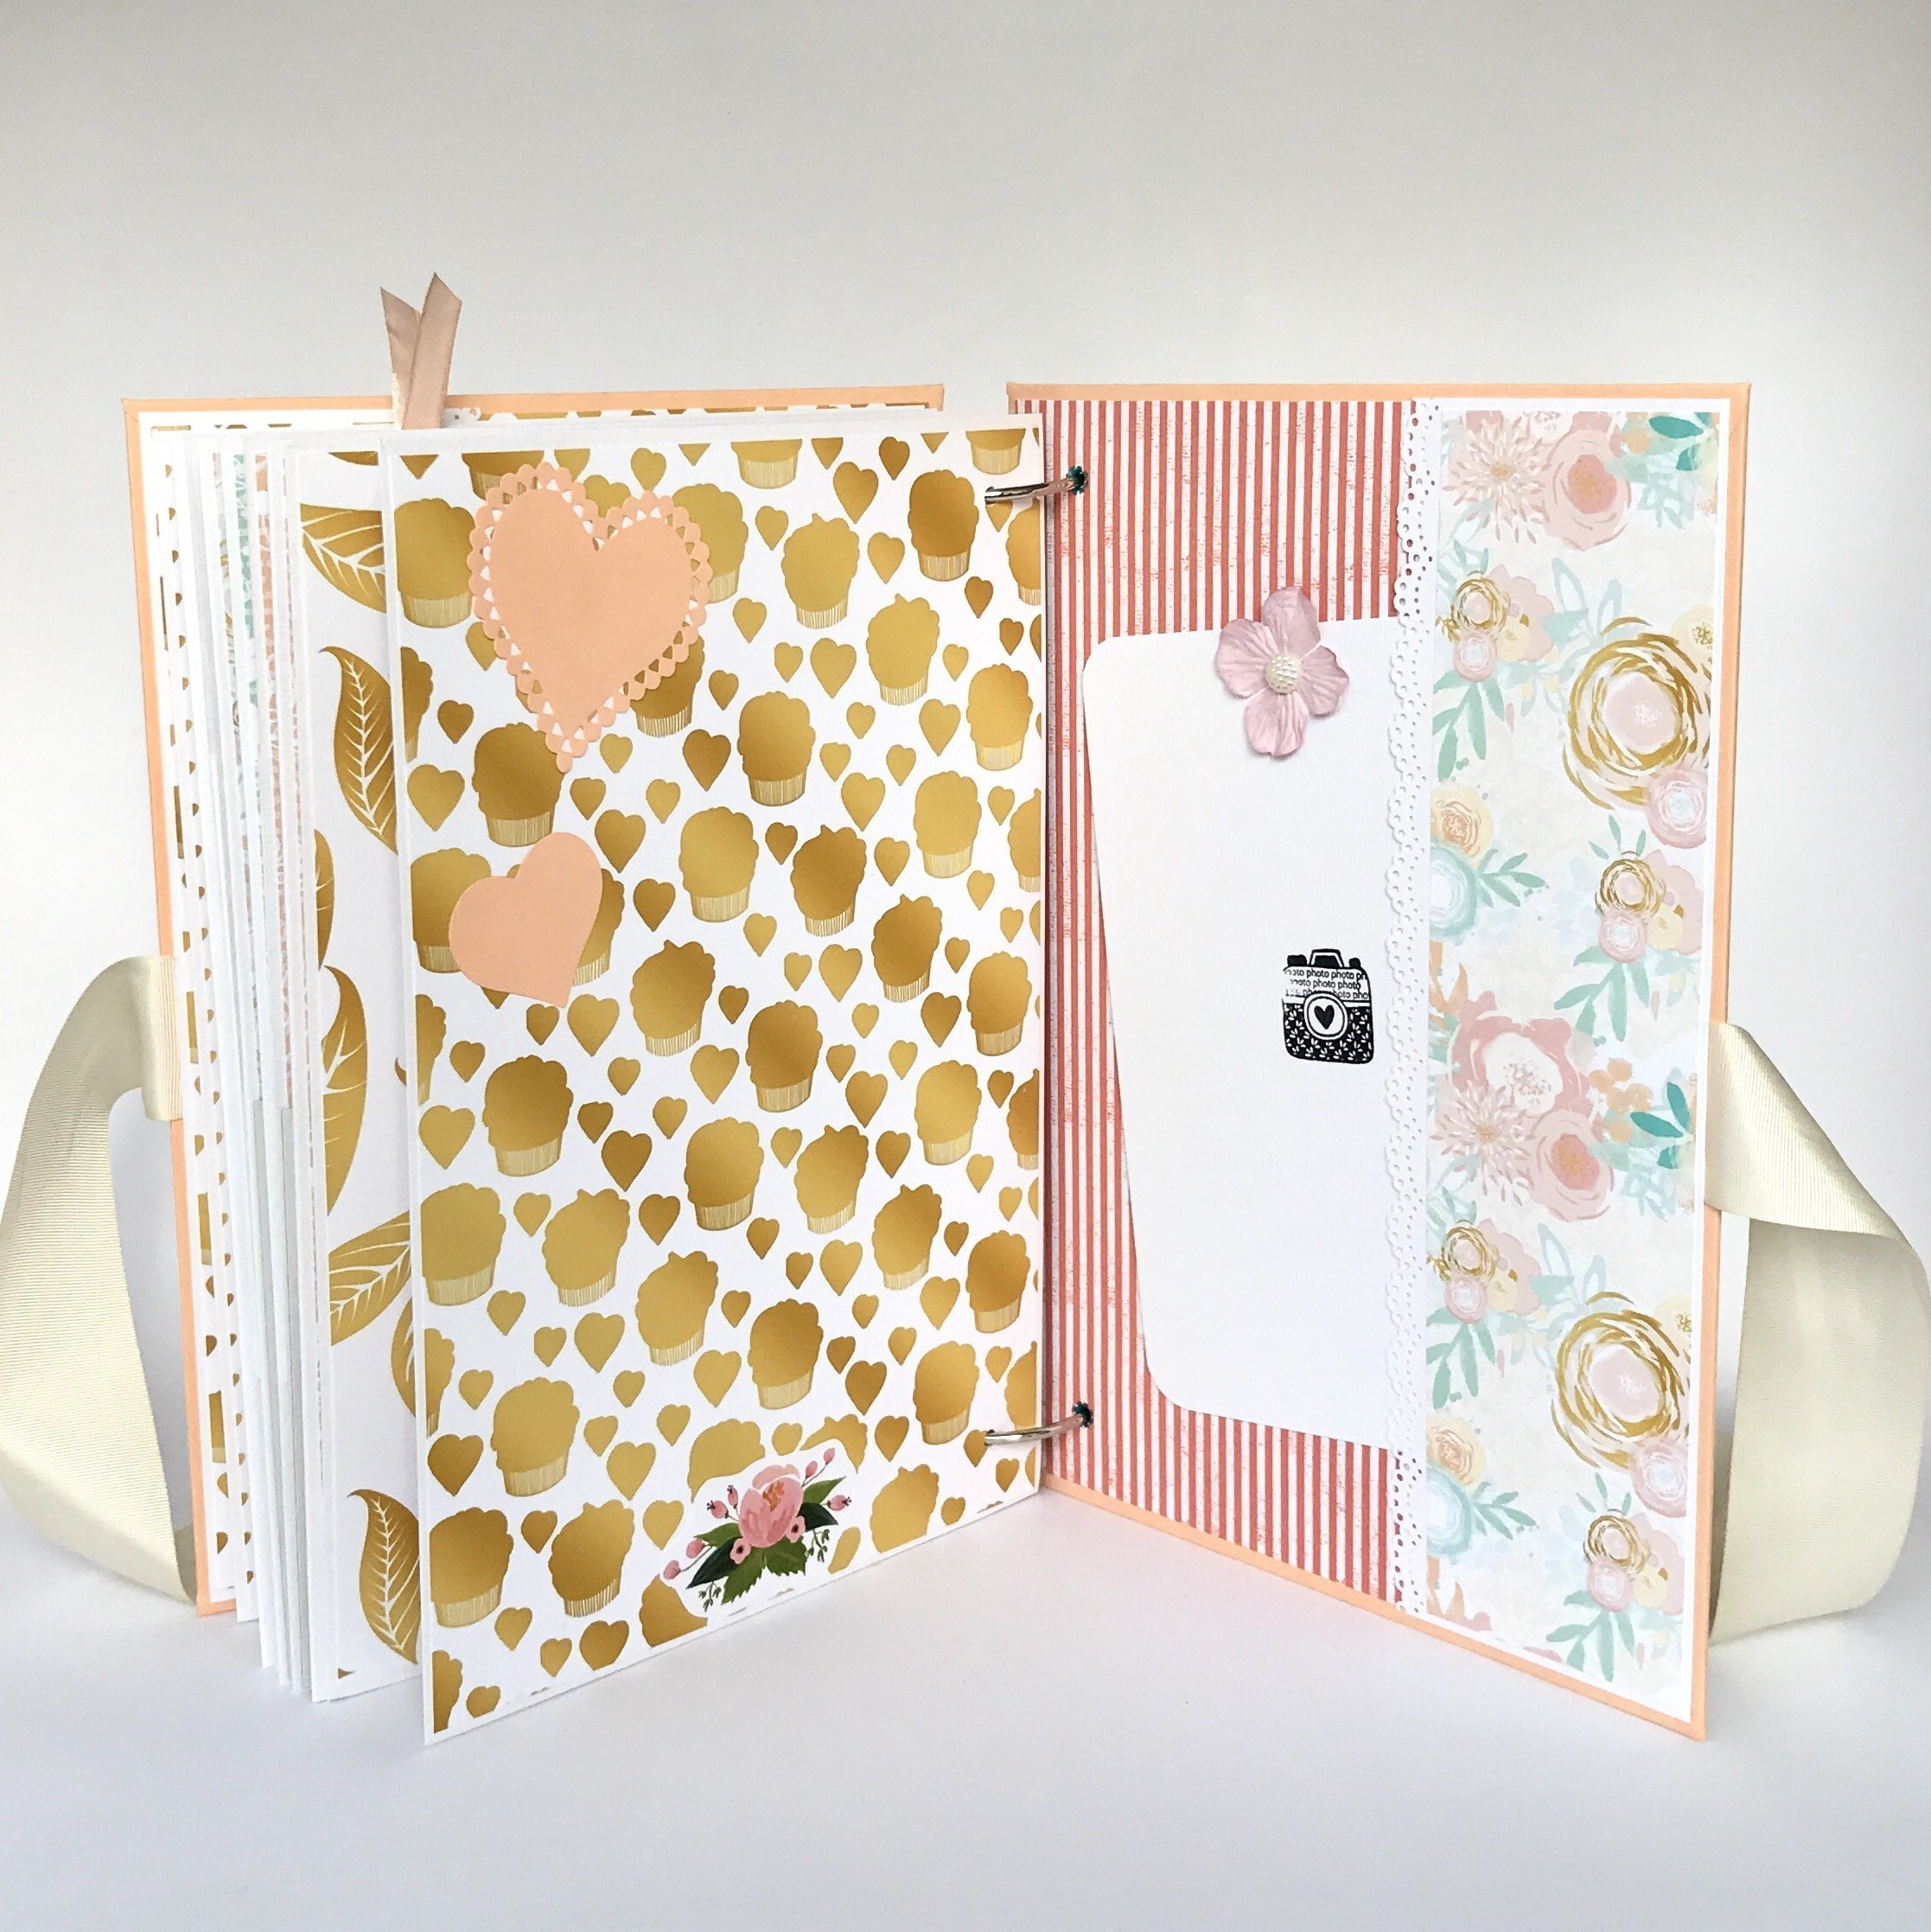 Kristabella Creations Mint and peach Baby girl memory book, size A4 8x11 inches, Metal ring binding, 20 decorated inside pages, Interactive, Month cards, Milestone card, Beautiful baby shower gift